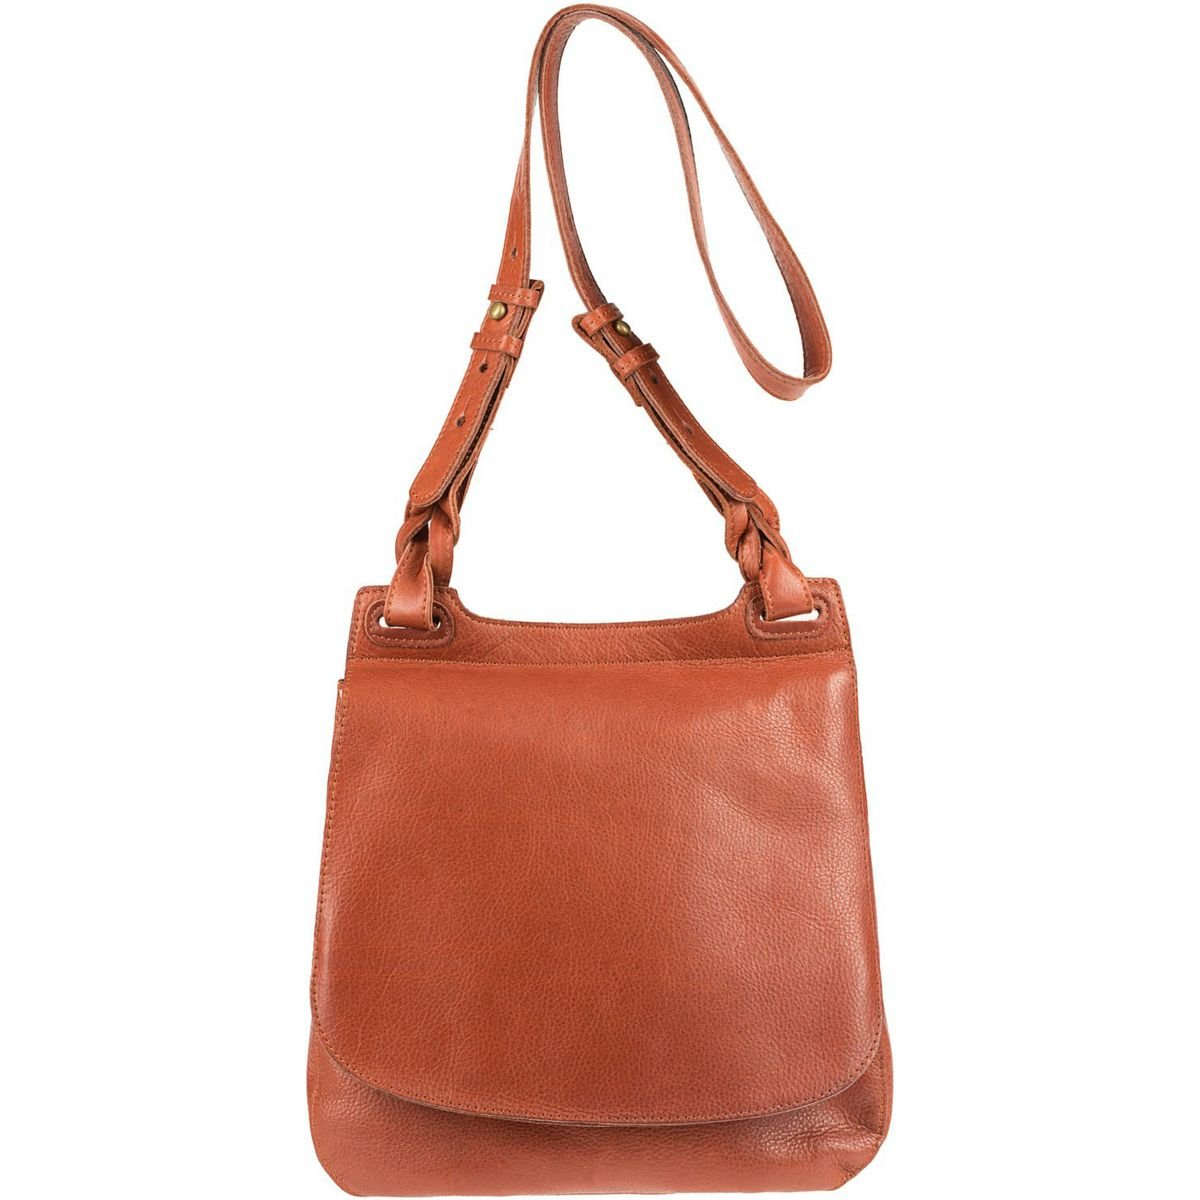 Will Leather Goods Cirrus Saddlebag Cognac, One Size by Will Leather Goods